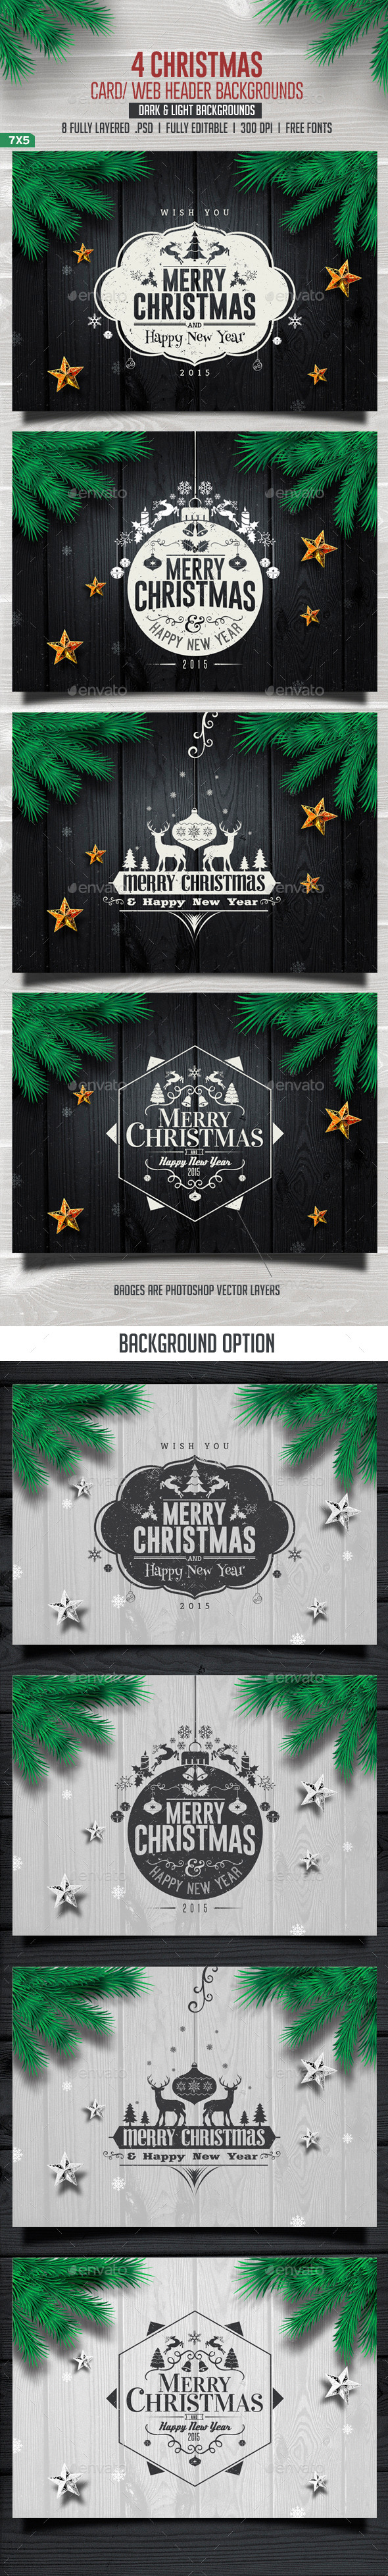 GraphicRiver Christmas Backgrounds 9496394